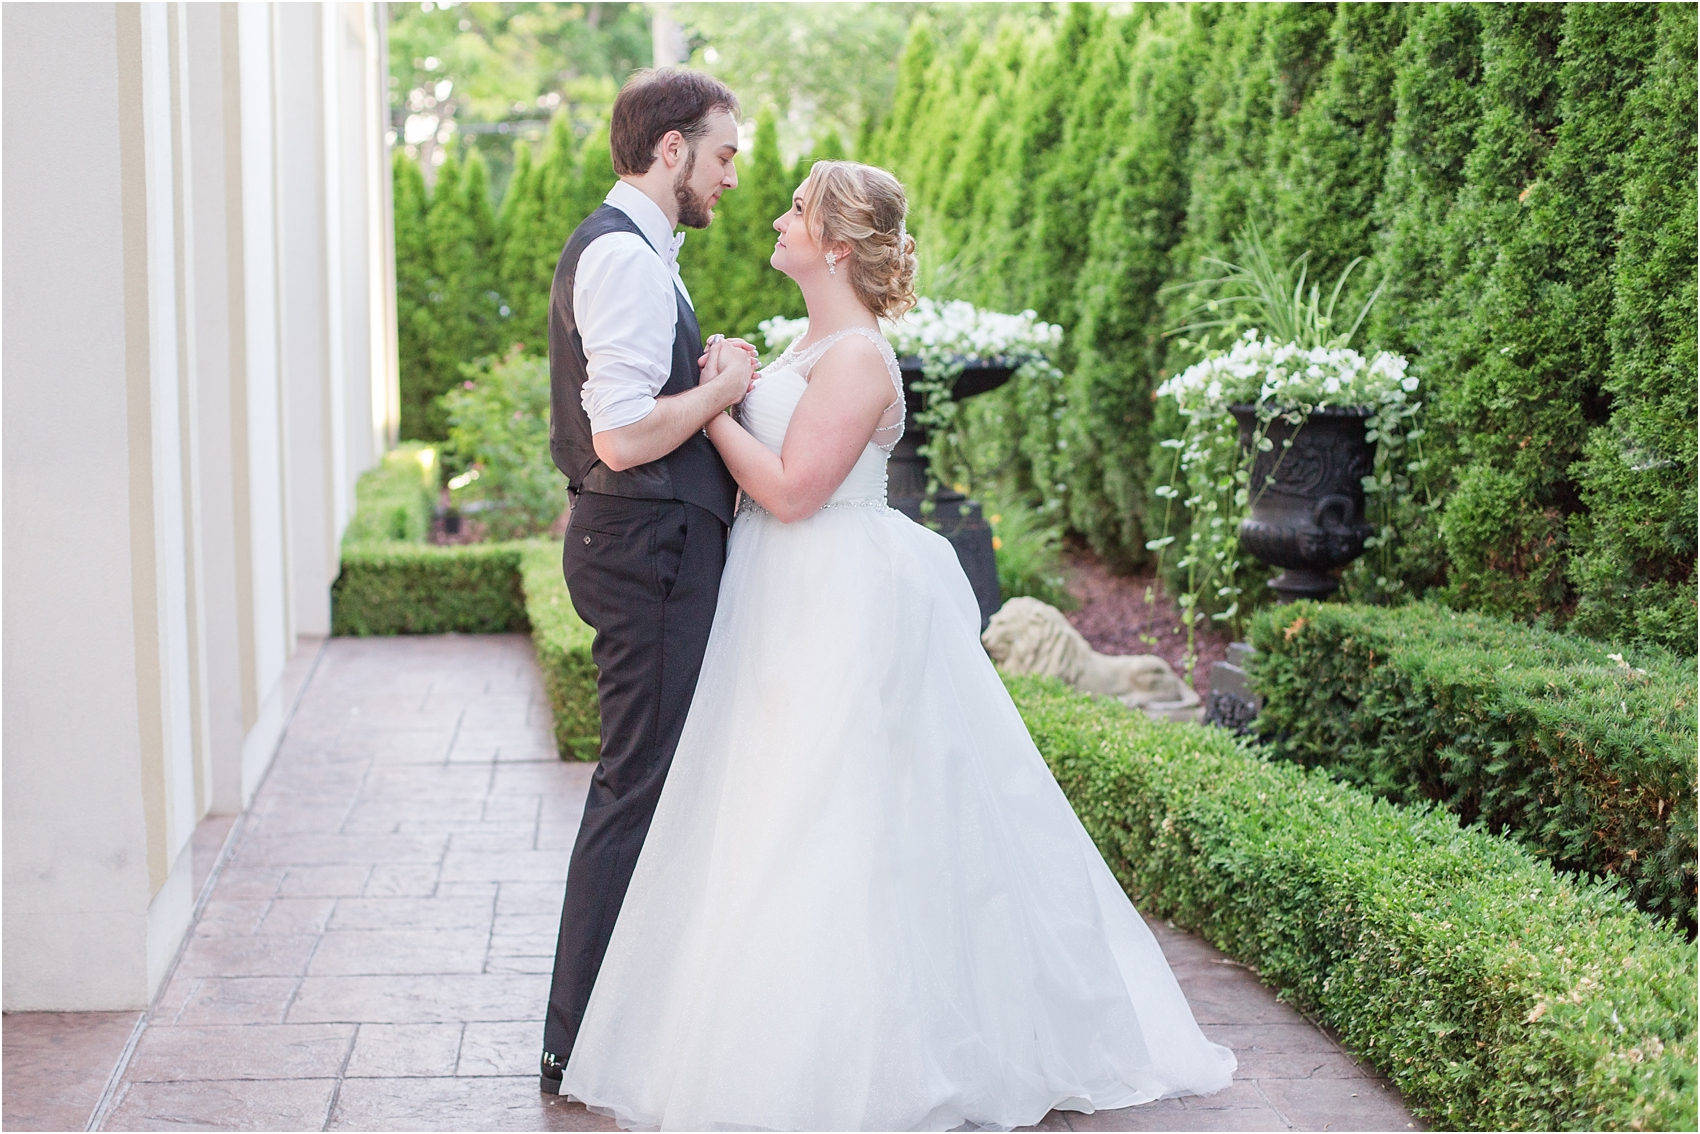 lord-of-the-rings-inspired-wedding-photos-at-crystal-gardens-in-howell-mi-by-courtney-carolyn-photography_0114.jpg